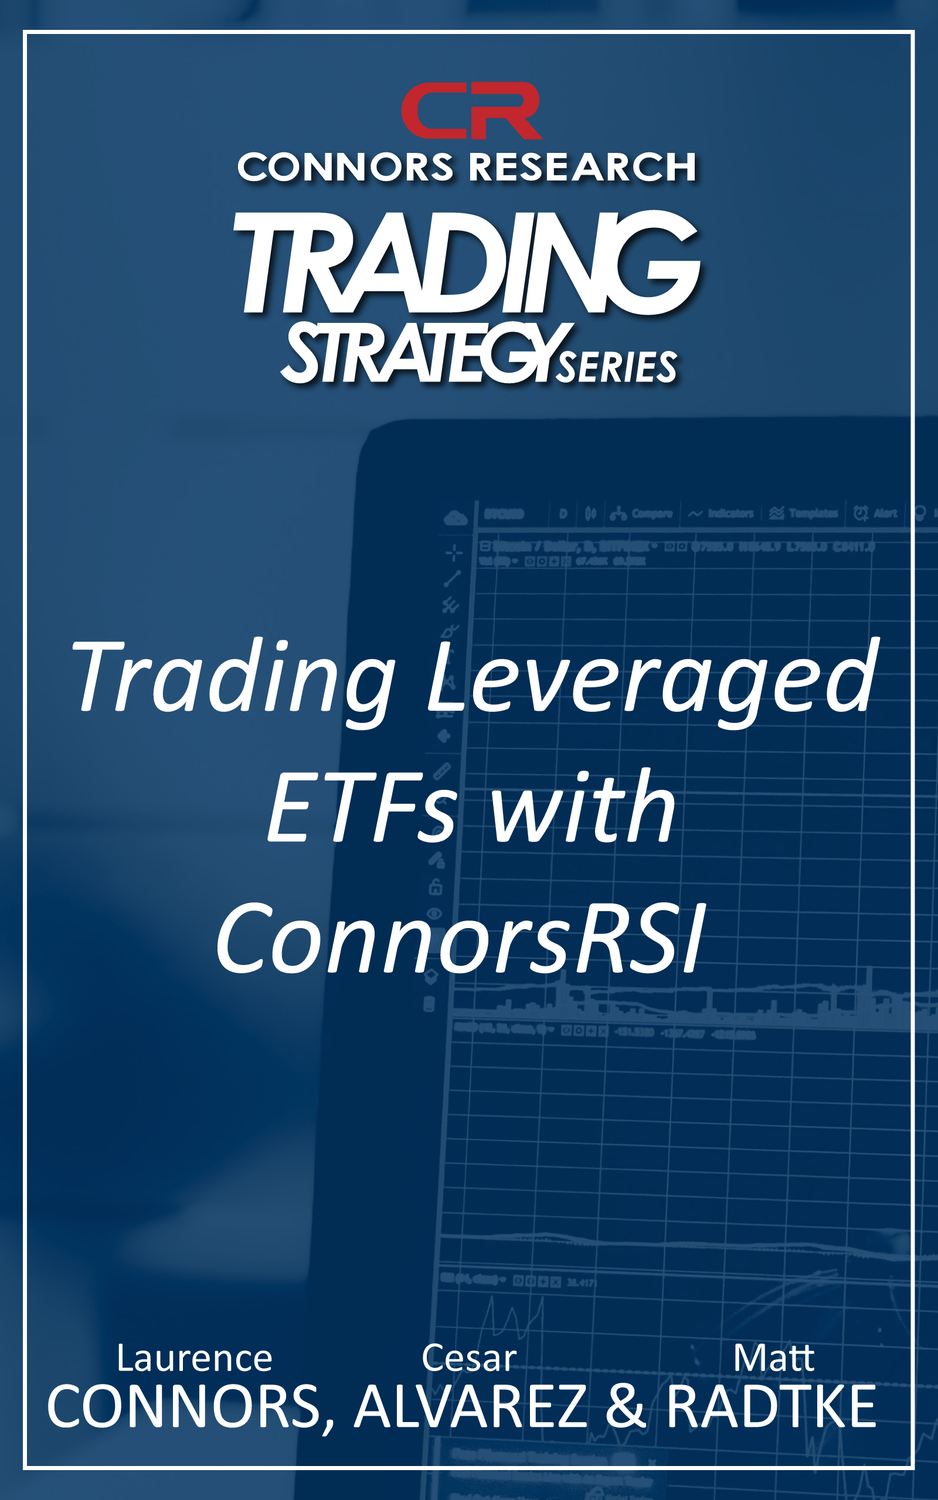 Connors Research Trading Strategy Series: Trading Leveraged ETFs With ConnorsRSI